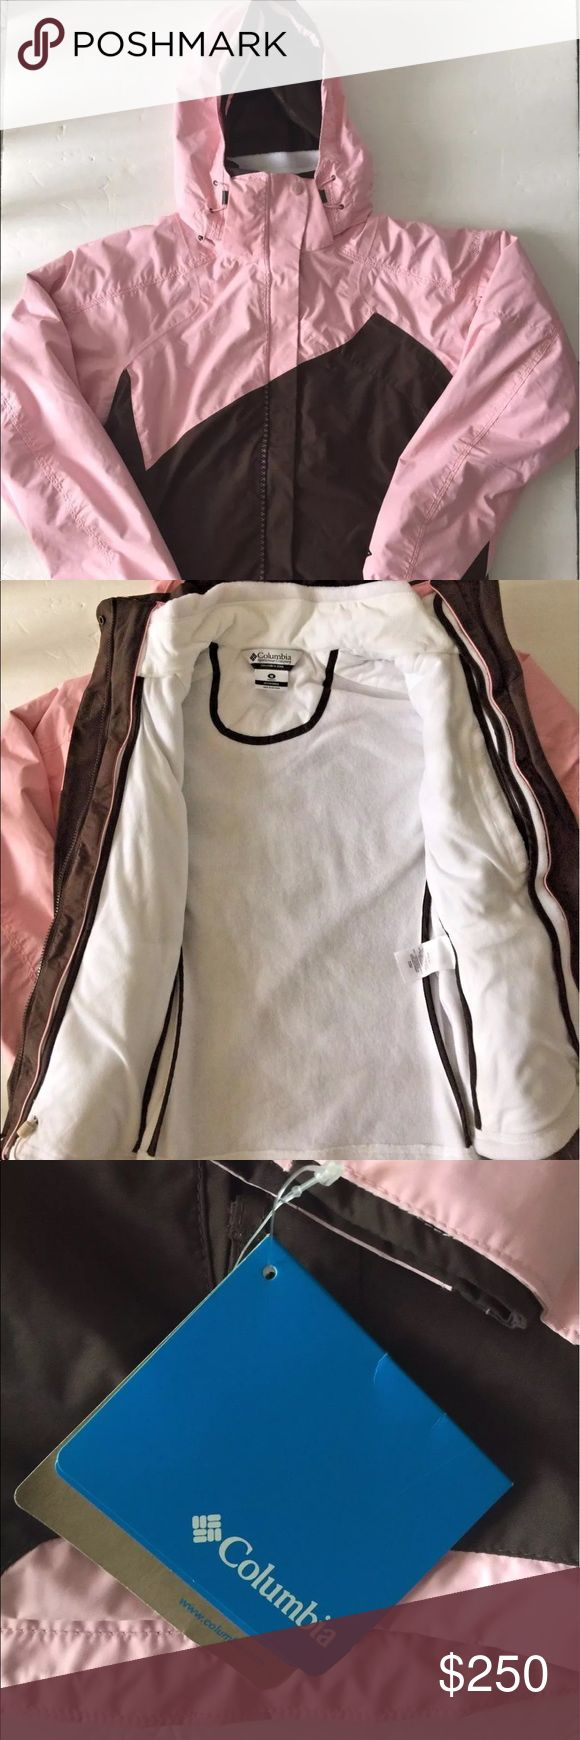 Columbia Pink Interchange Winter Coat Parka M NWT Brand new with tags.  Never worn.  Discontinued model.  3-in-1 parka.  Removable fleece on the inside.  Hood is also removable.  Perfect for skiing, casual wear, and snow! Columbia Jackets & Coats